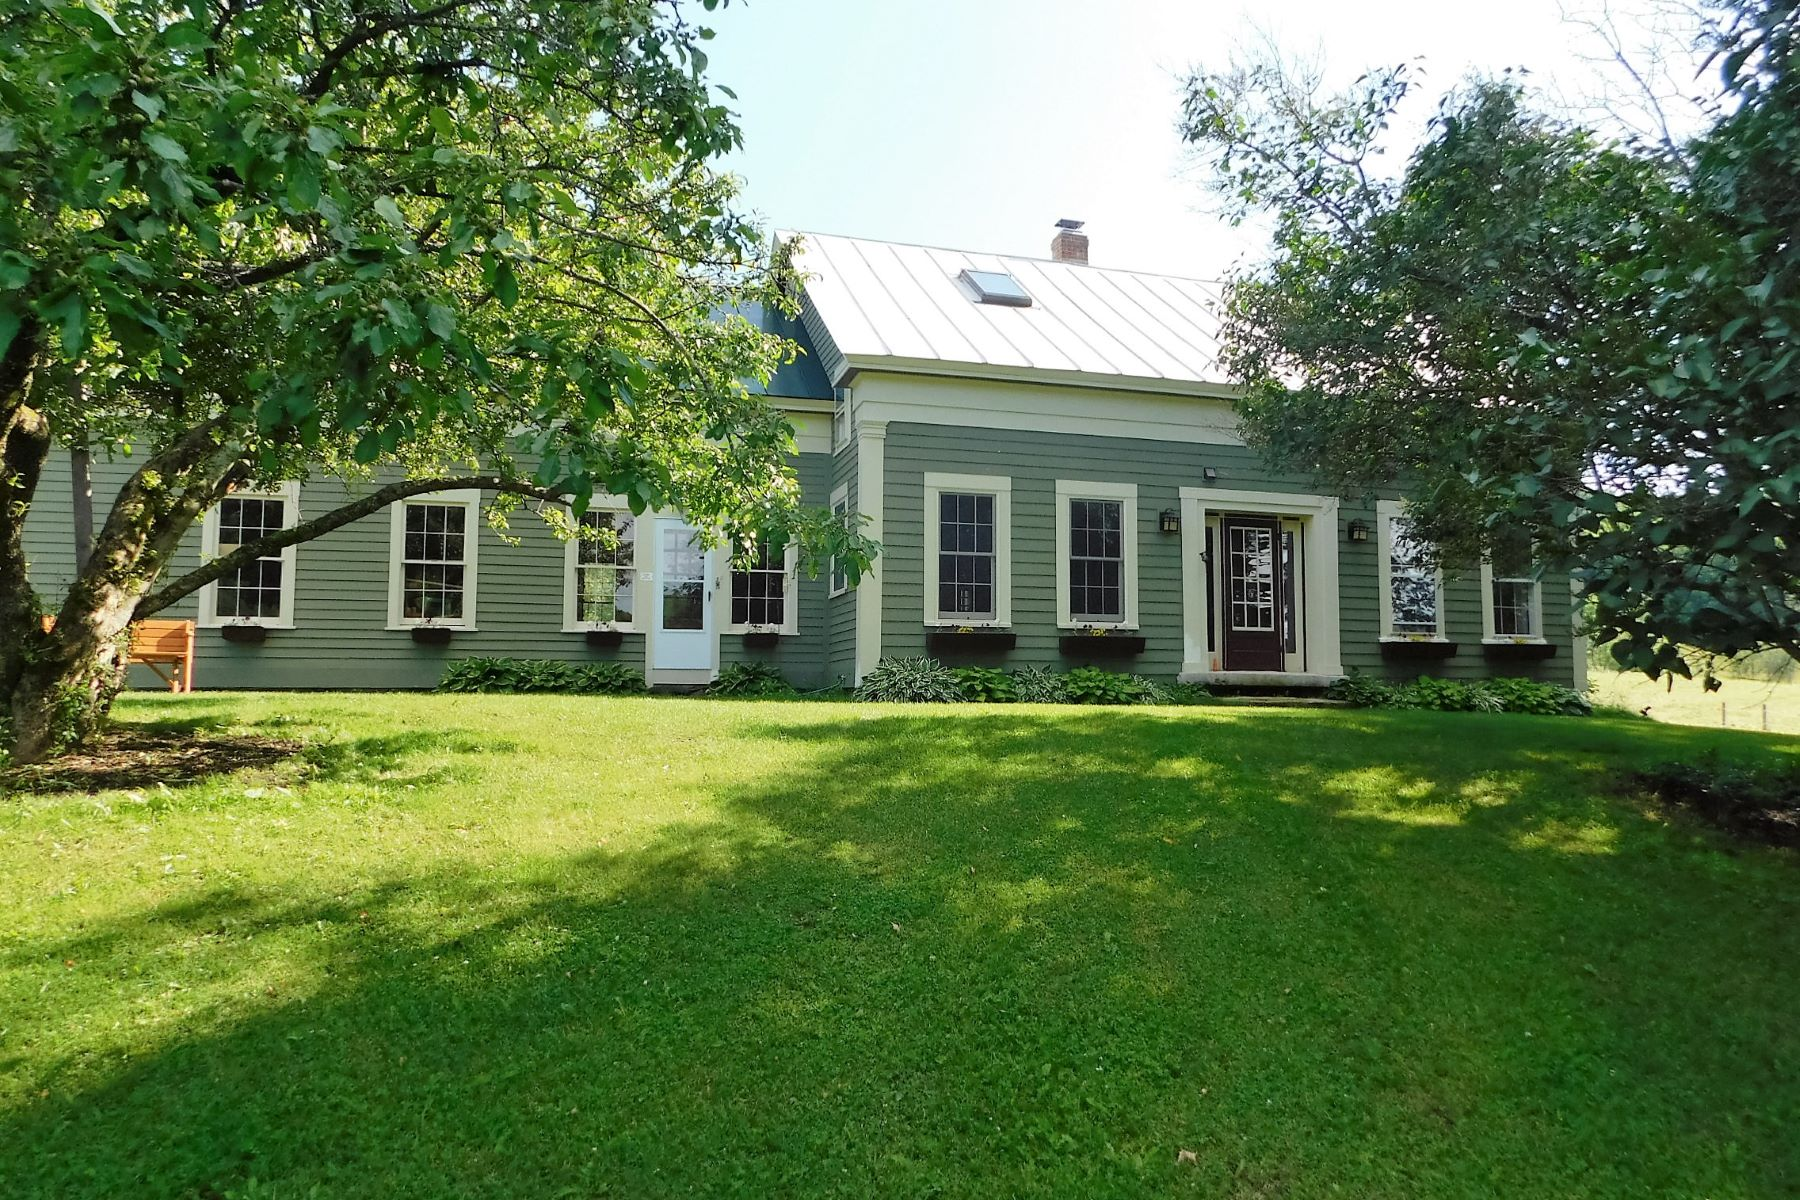 Casa Unifamiliar por un Venta en 106 Gilley Road, Tunbridge 106 Gilley Rd Tunbridge, Vermont, 05077 Estados Unidos